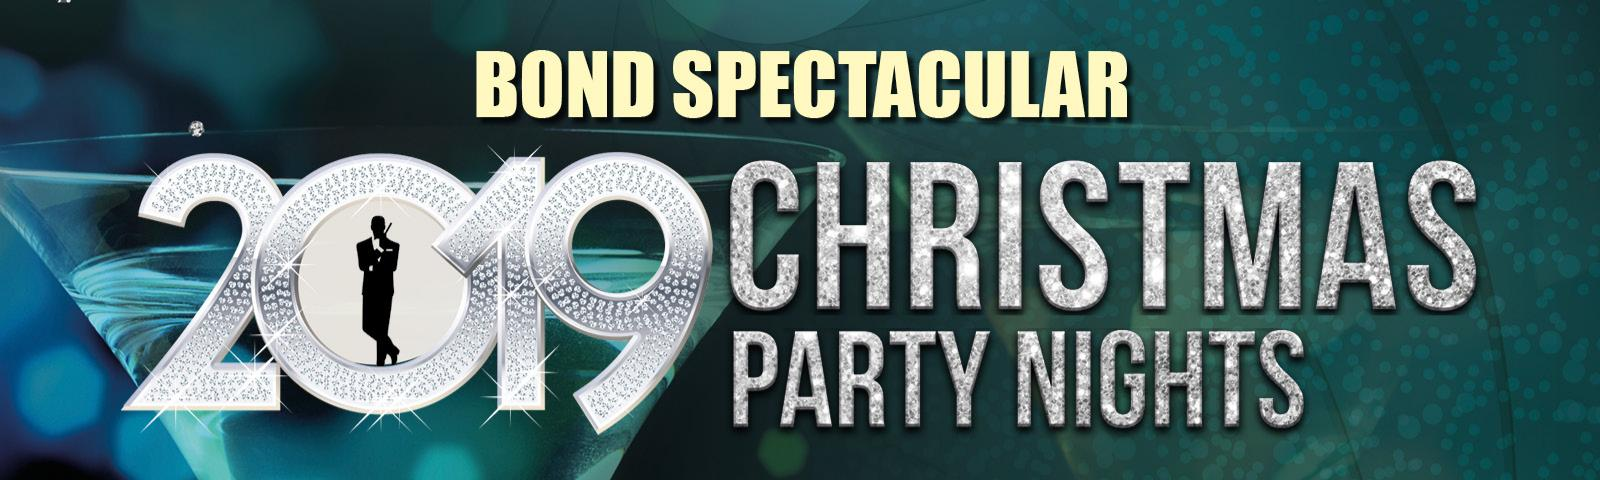 Celebrate Christmas at Fontwell Park with our Bond Spectacular Christmas Party Nights!